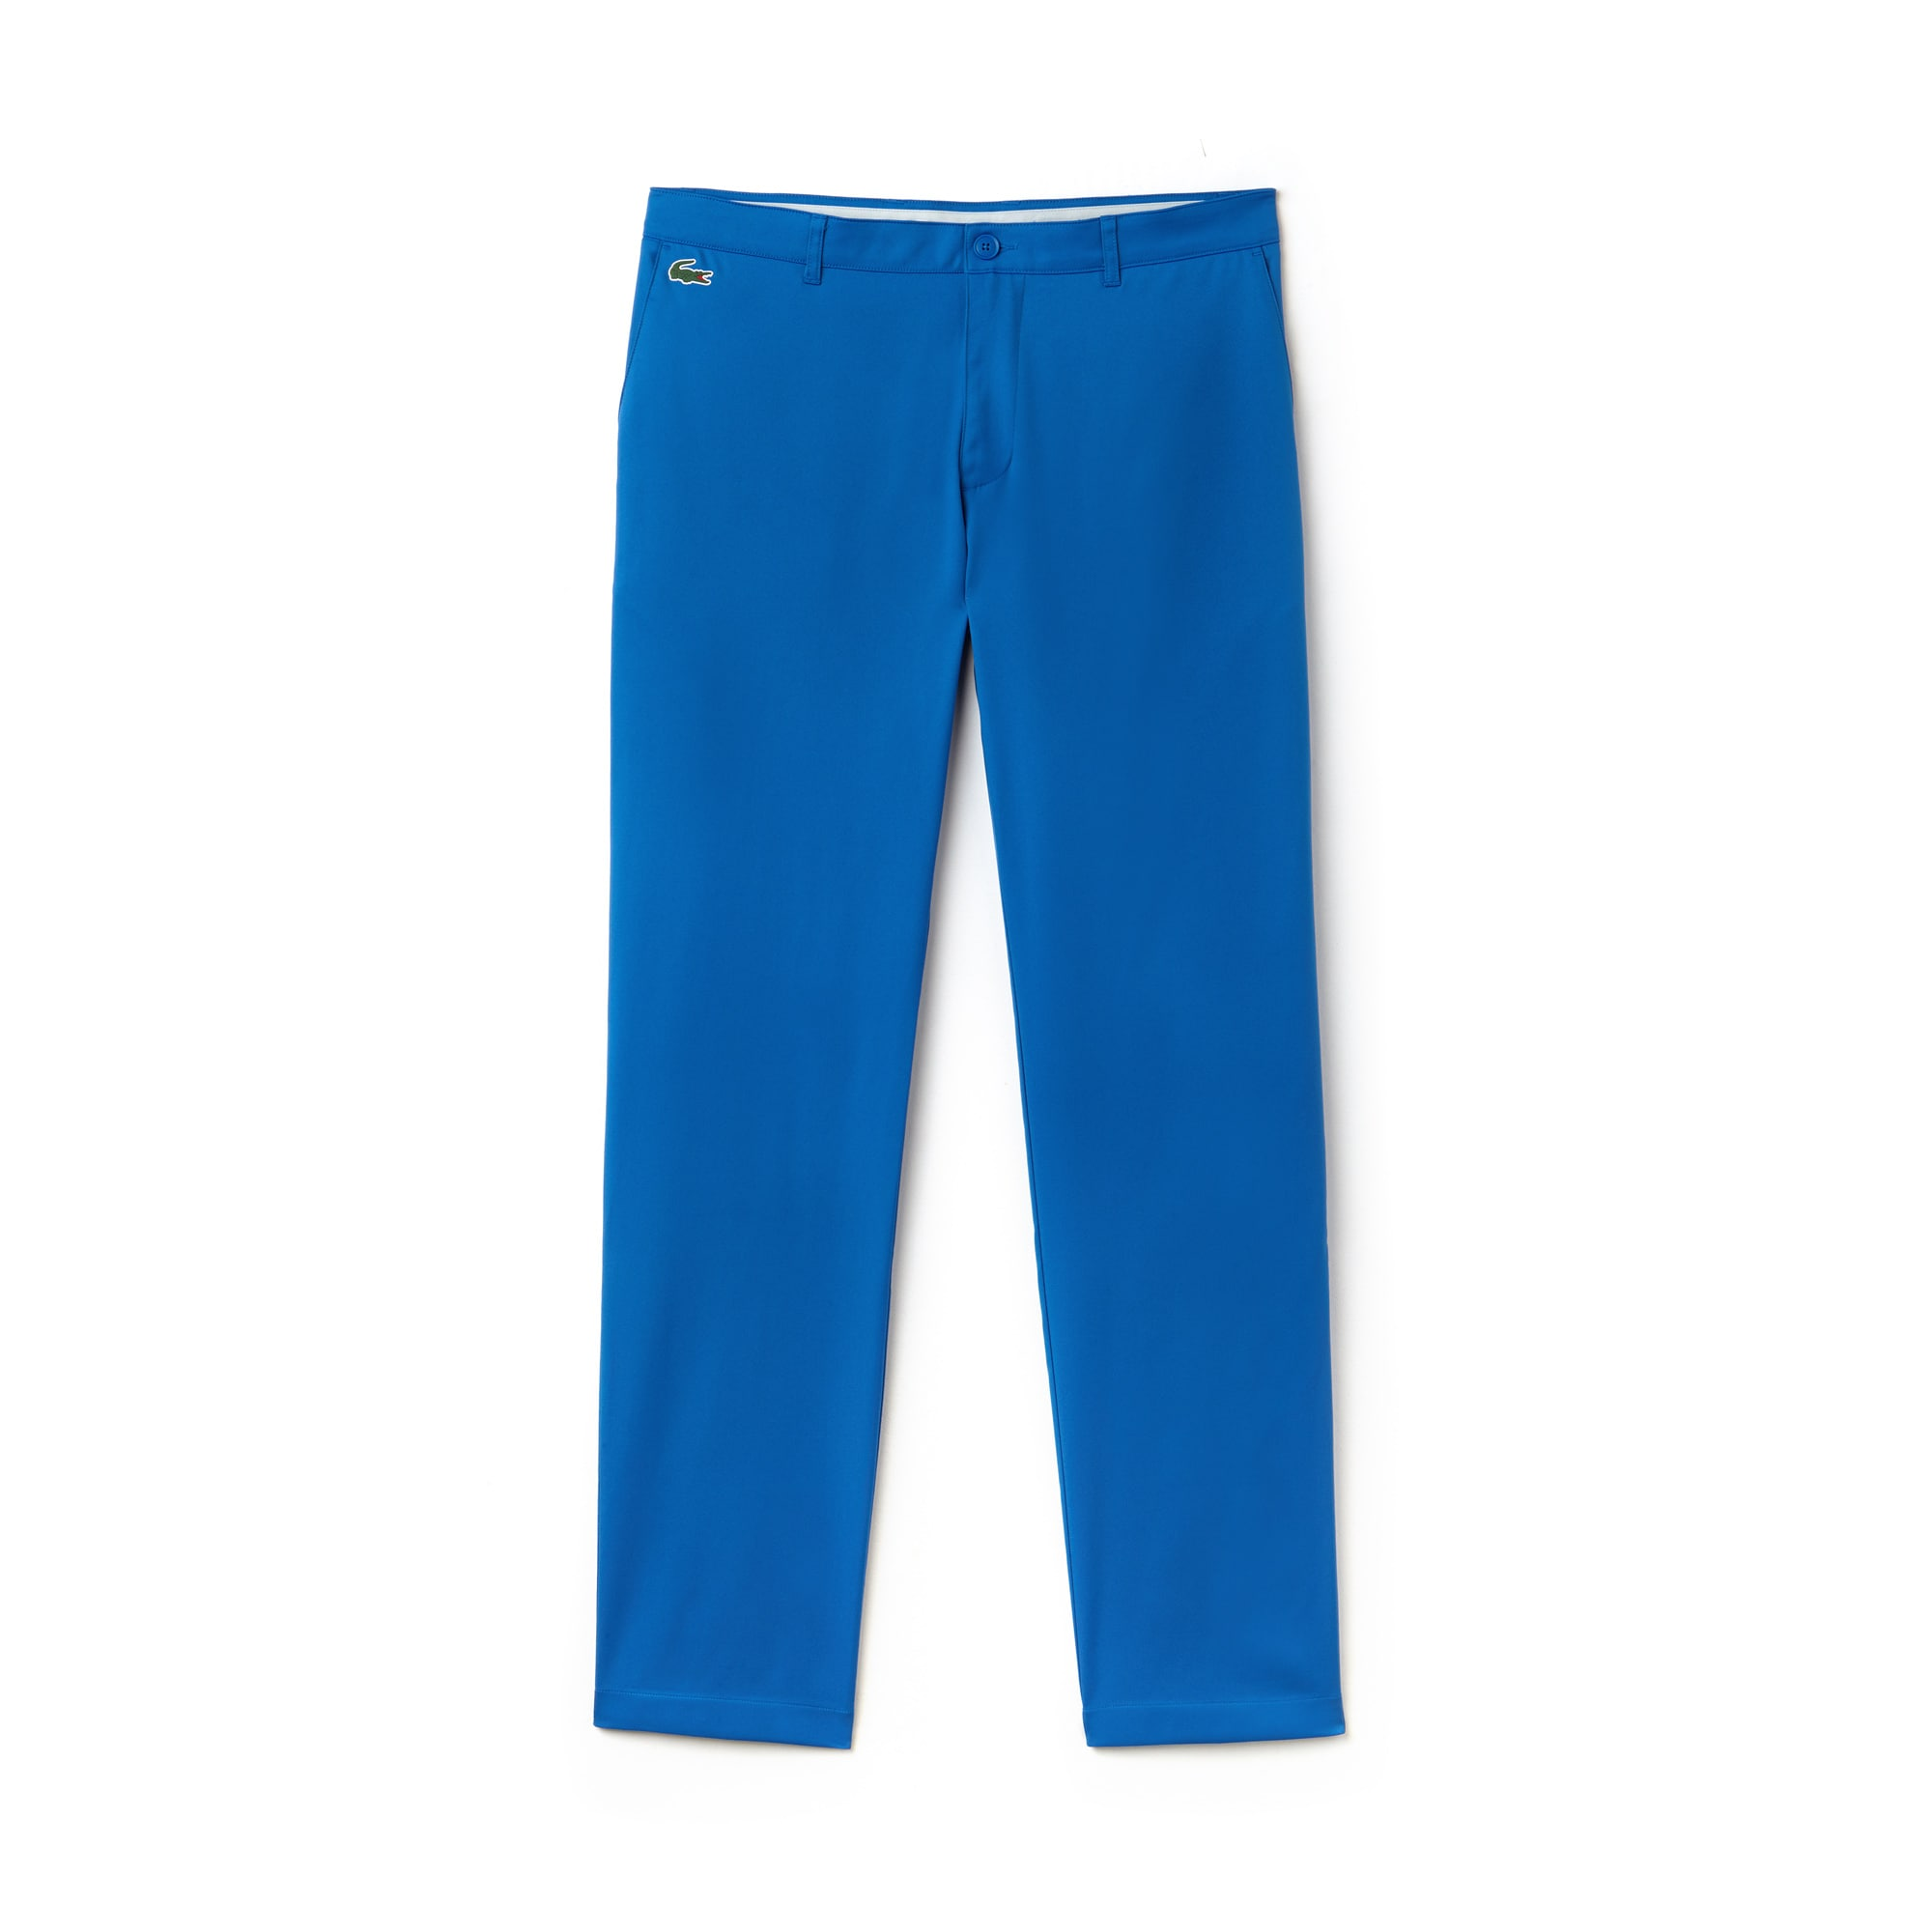 라코스테 Lacoste Mens SPORT Technical Gabardine Golf Chino Pants,blue